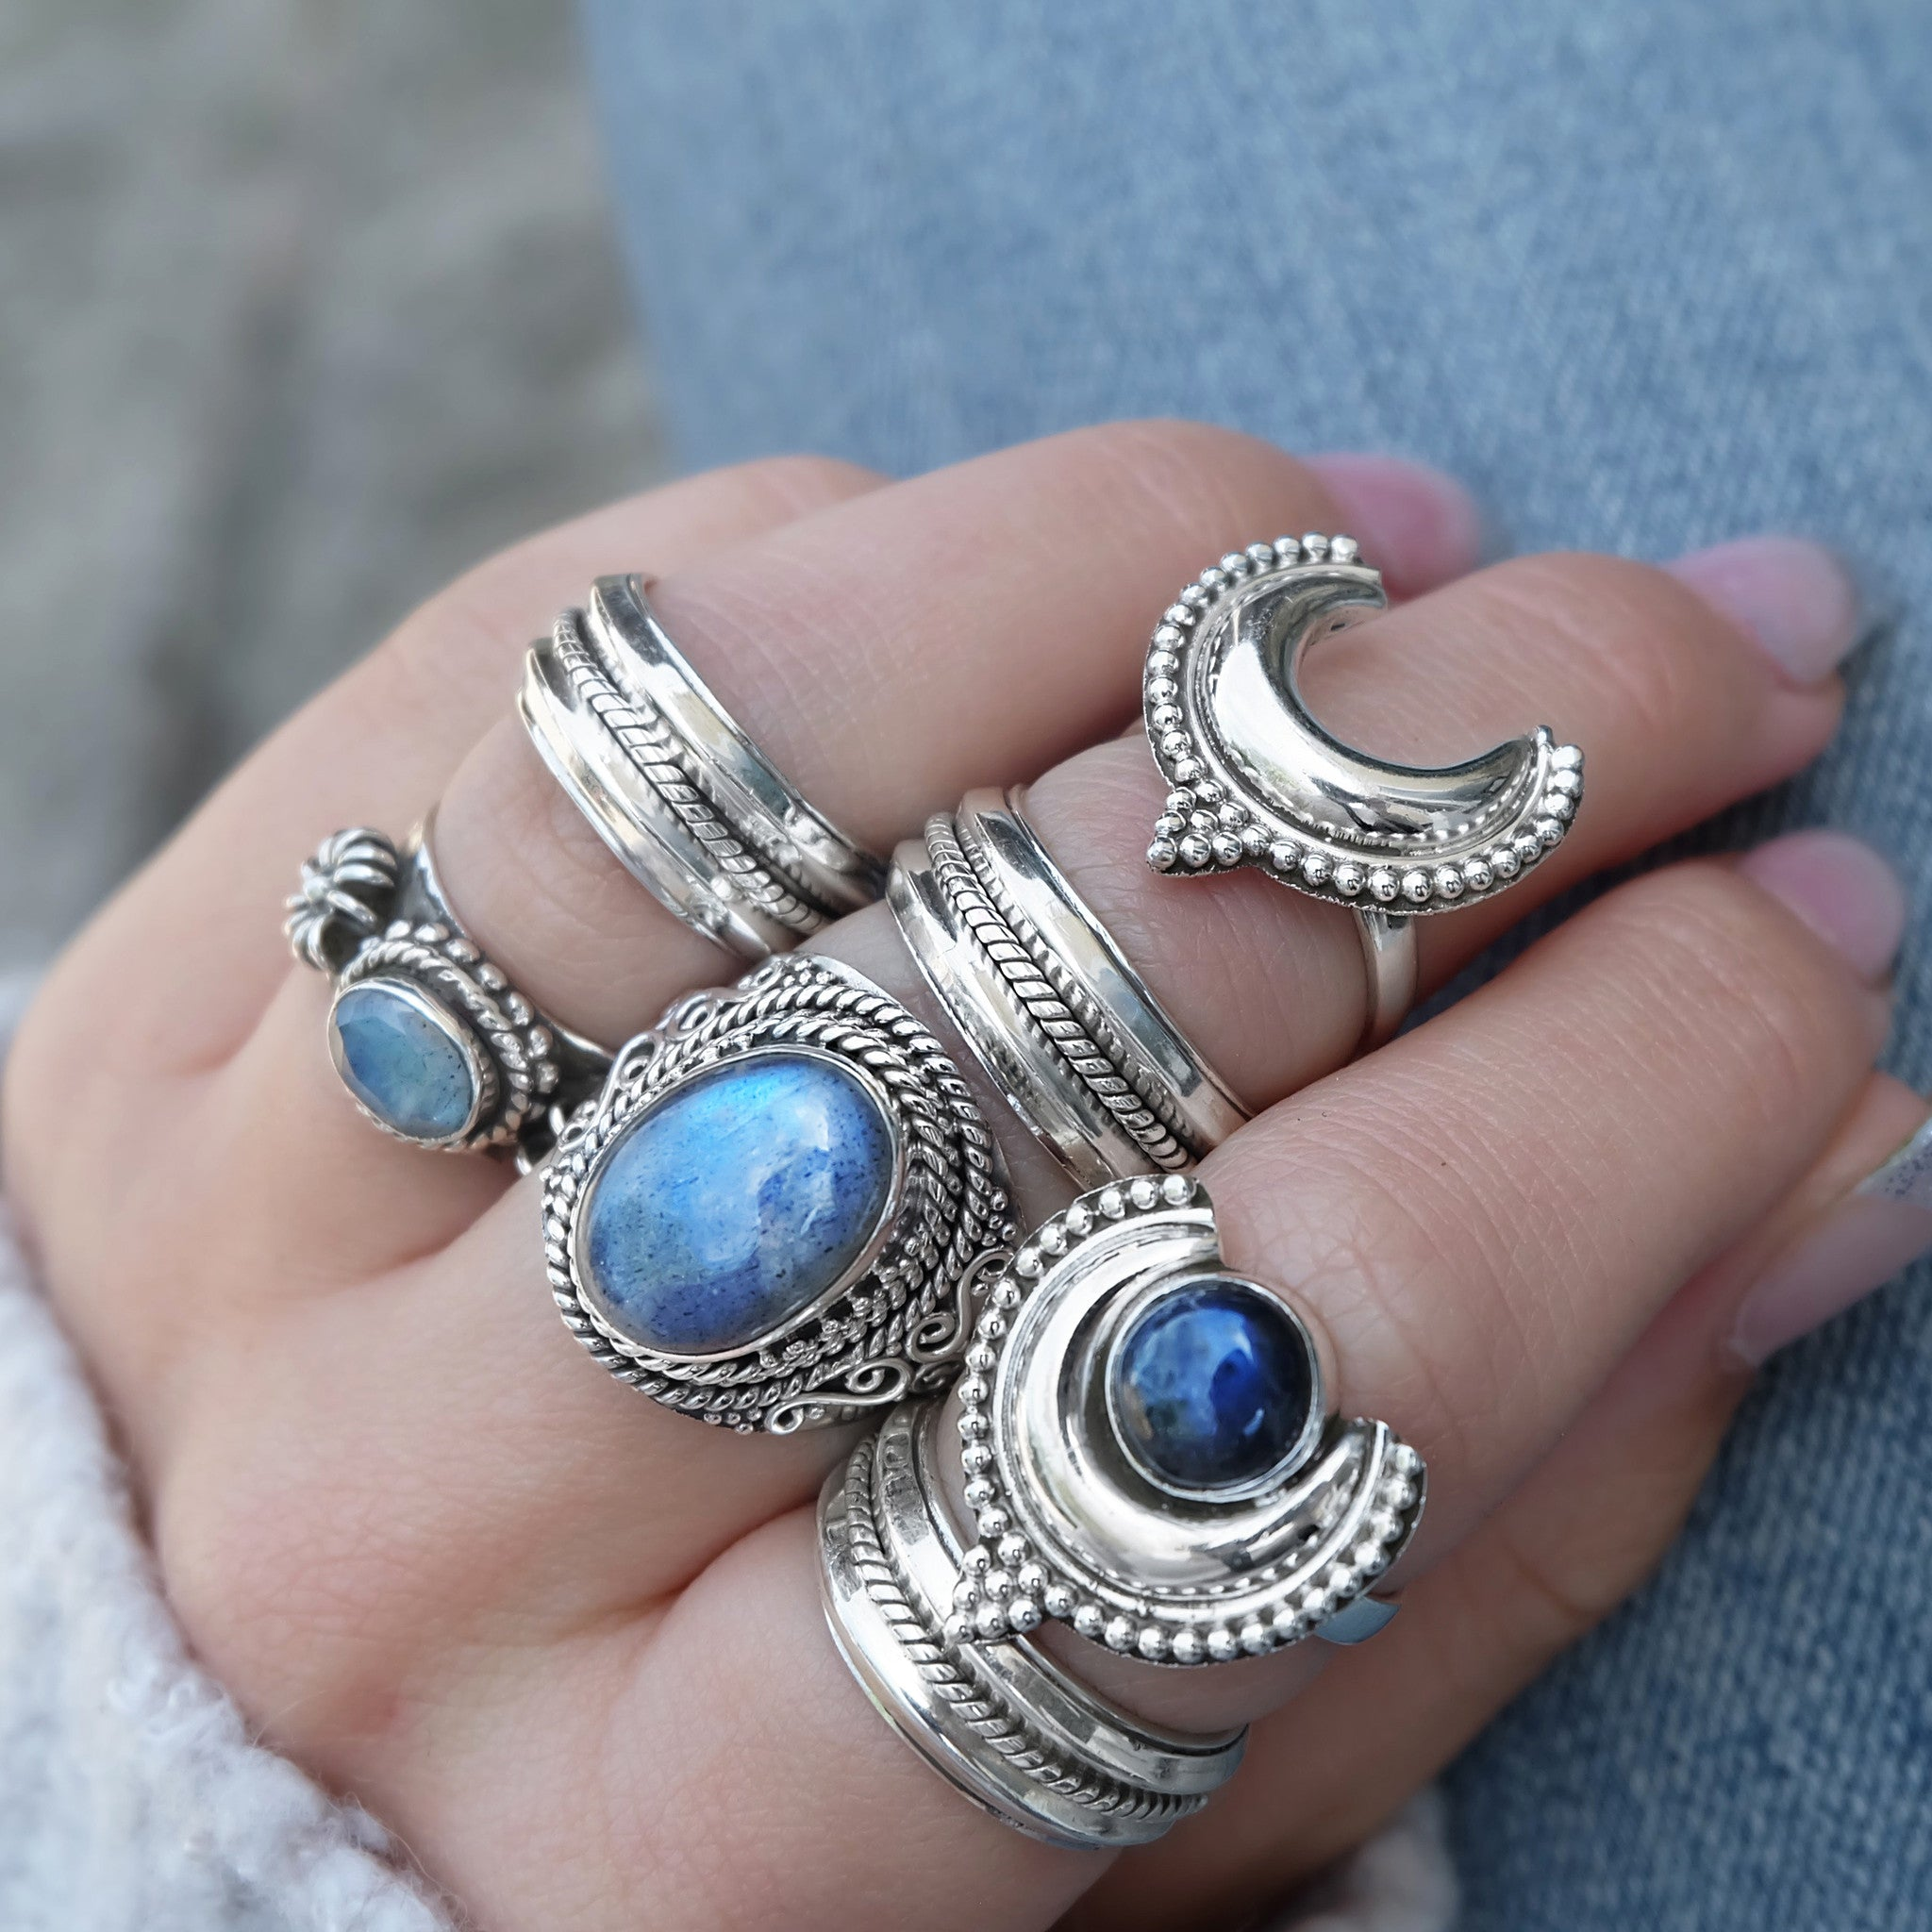 CRESCENT MOON LUNA OF THE VALLEY RING